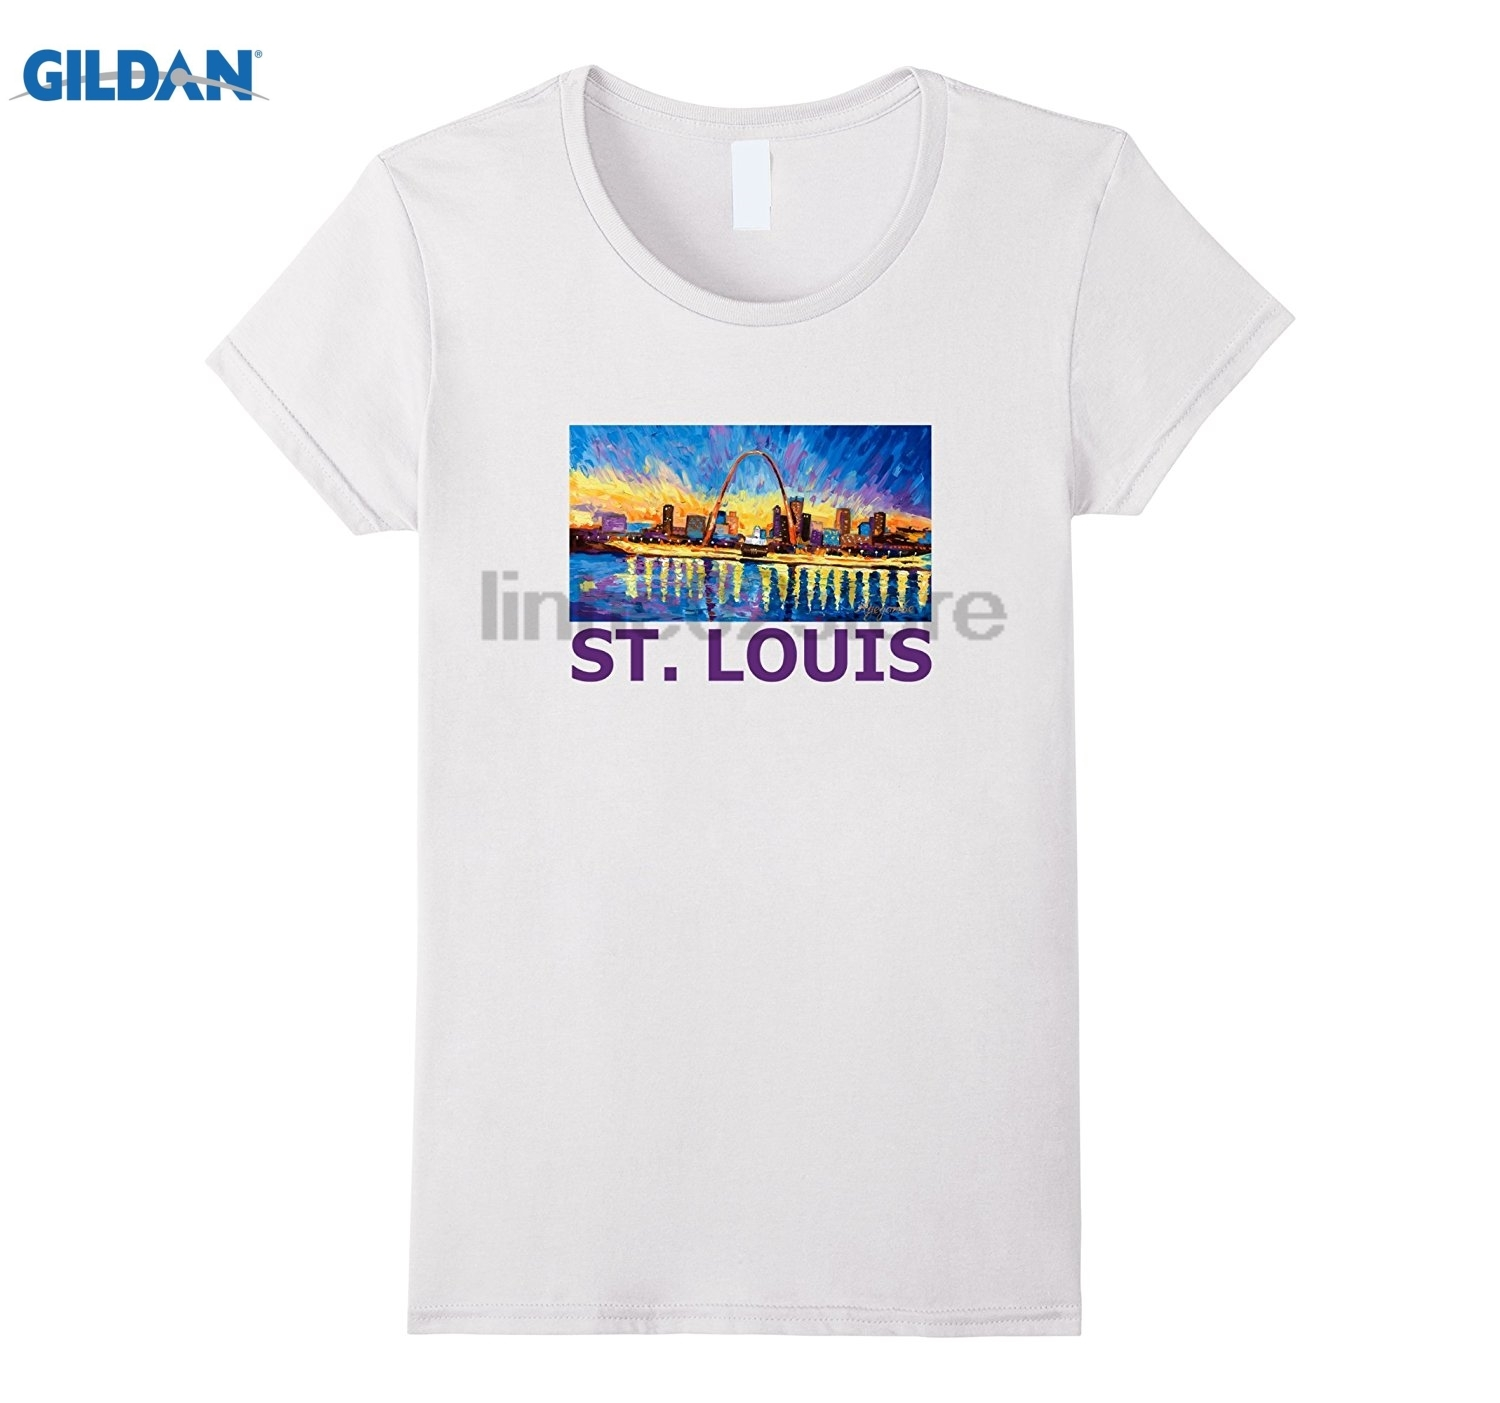 GILDAN ST. Louis Missouri Skyline Panorama Painting Art T Shirt Womens T-shirt dress T-shirt